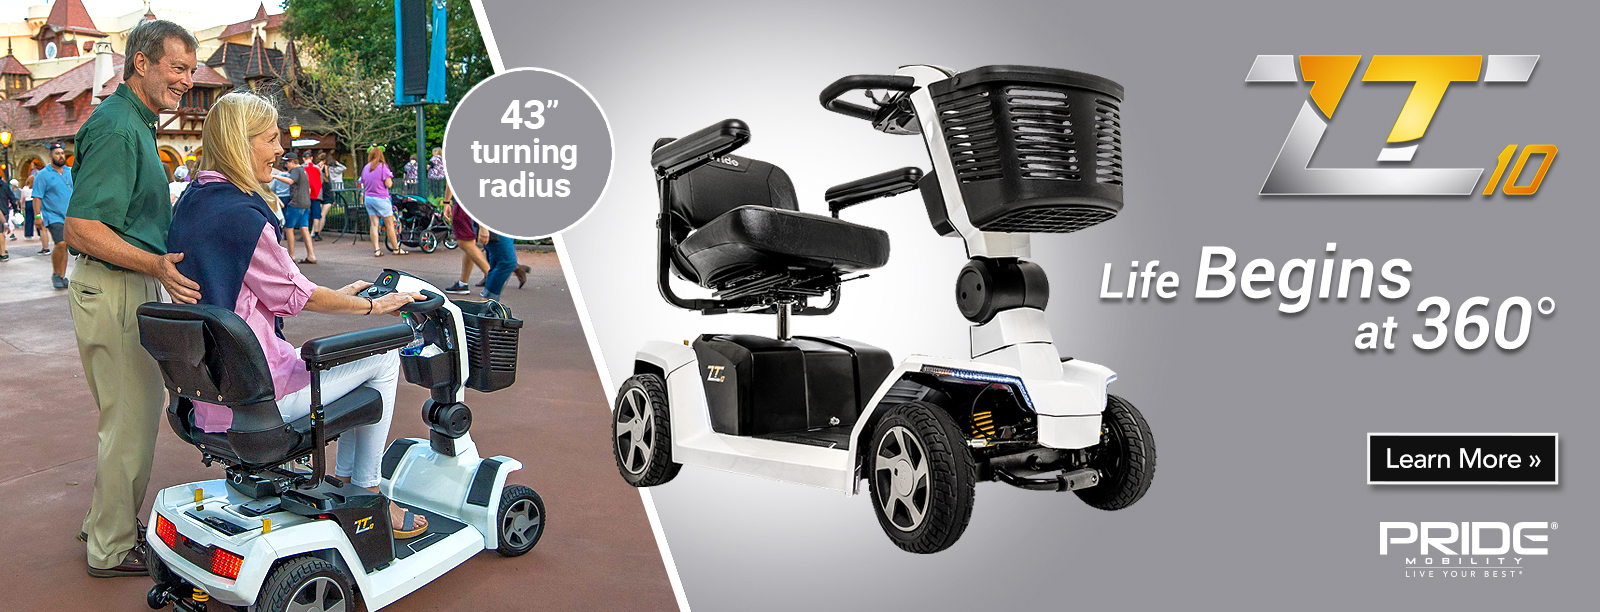 Pride Mobility ZT 10 4 Wheel Personal Mobility Scooter